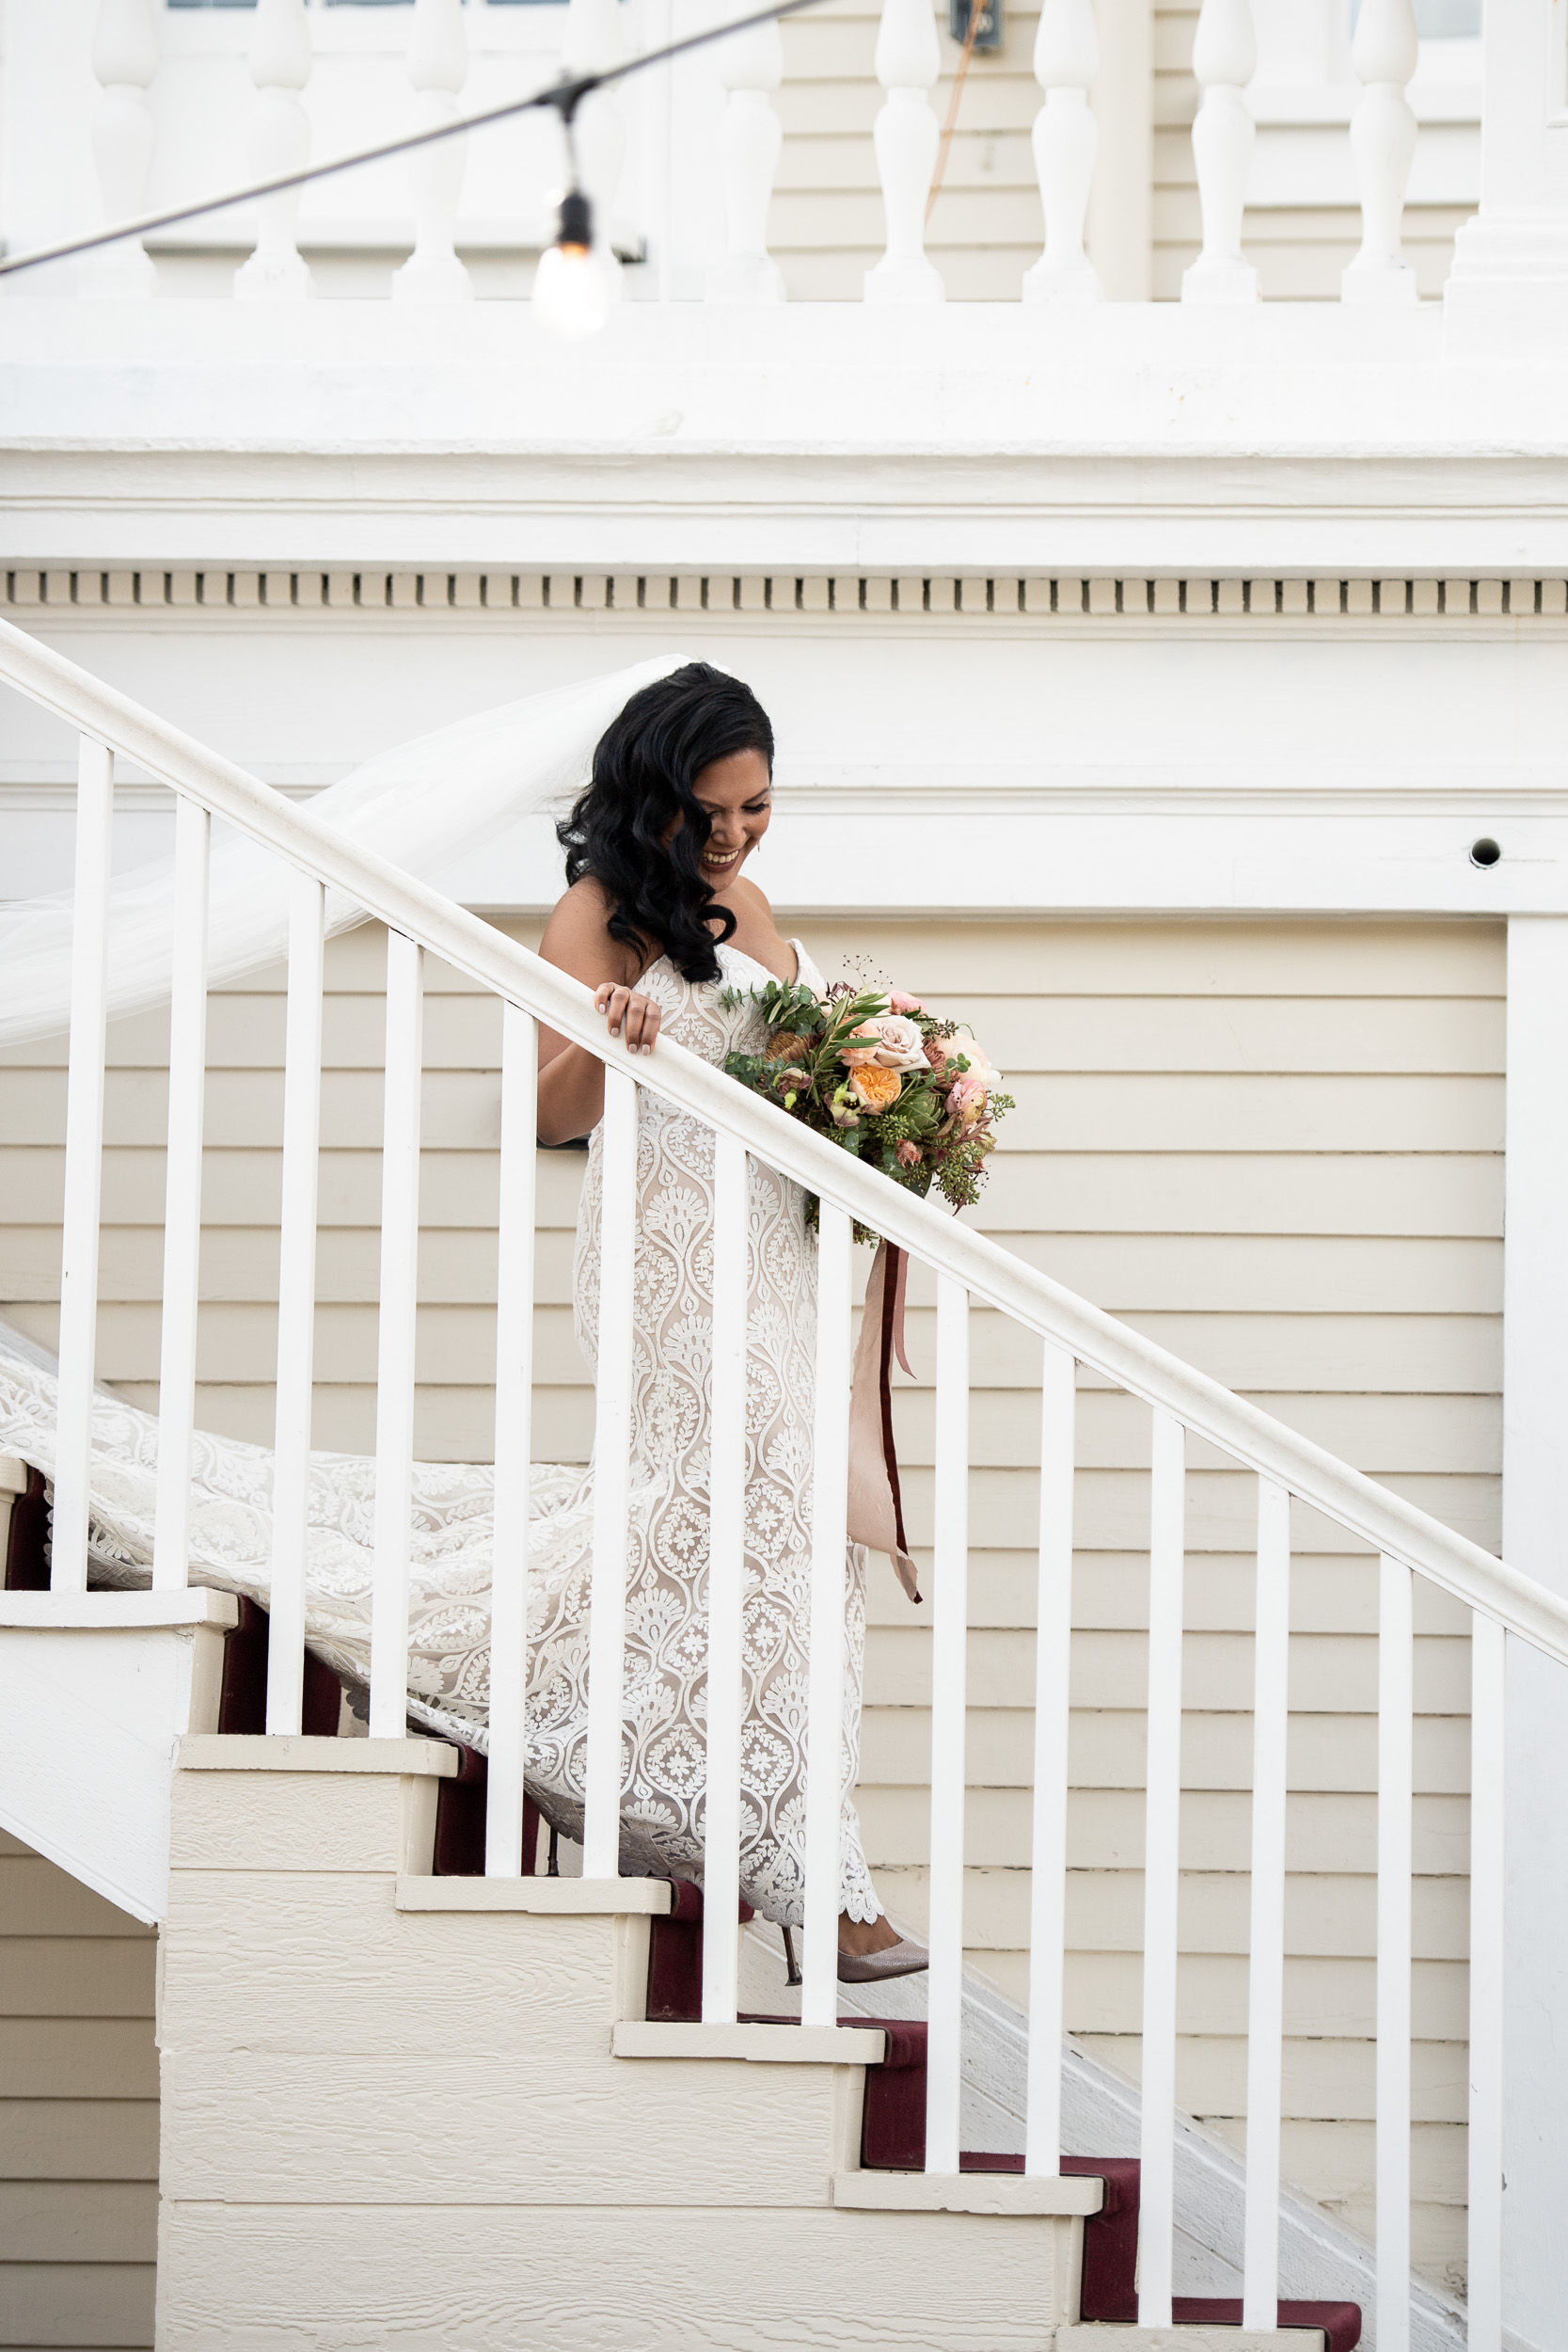 the-lighthouse-at-glen-cove-marina-vallejo-wedding-photography-19.jpg